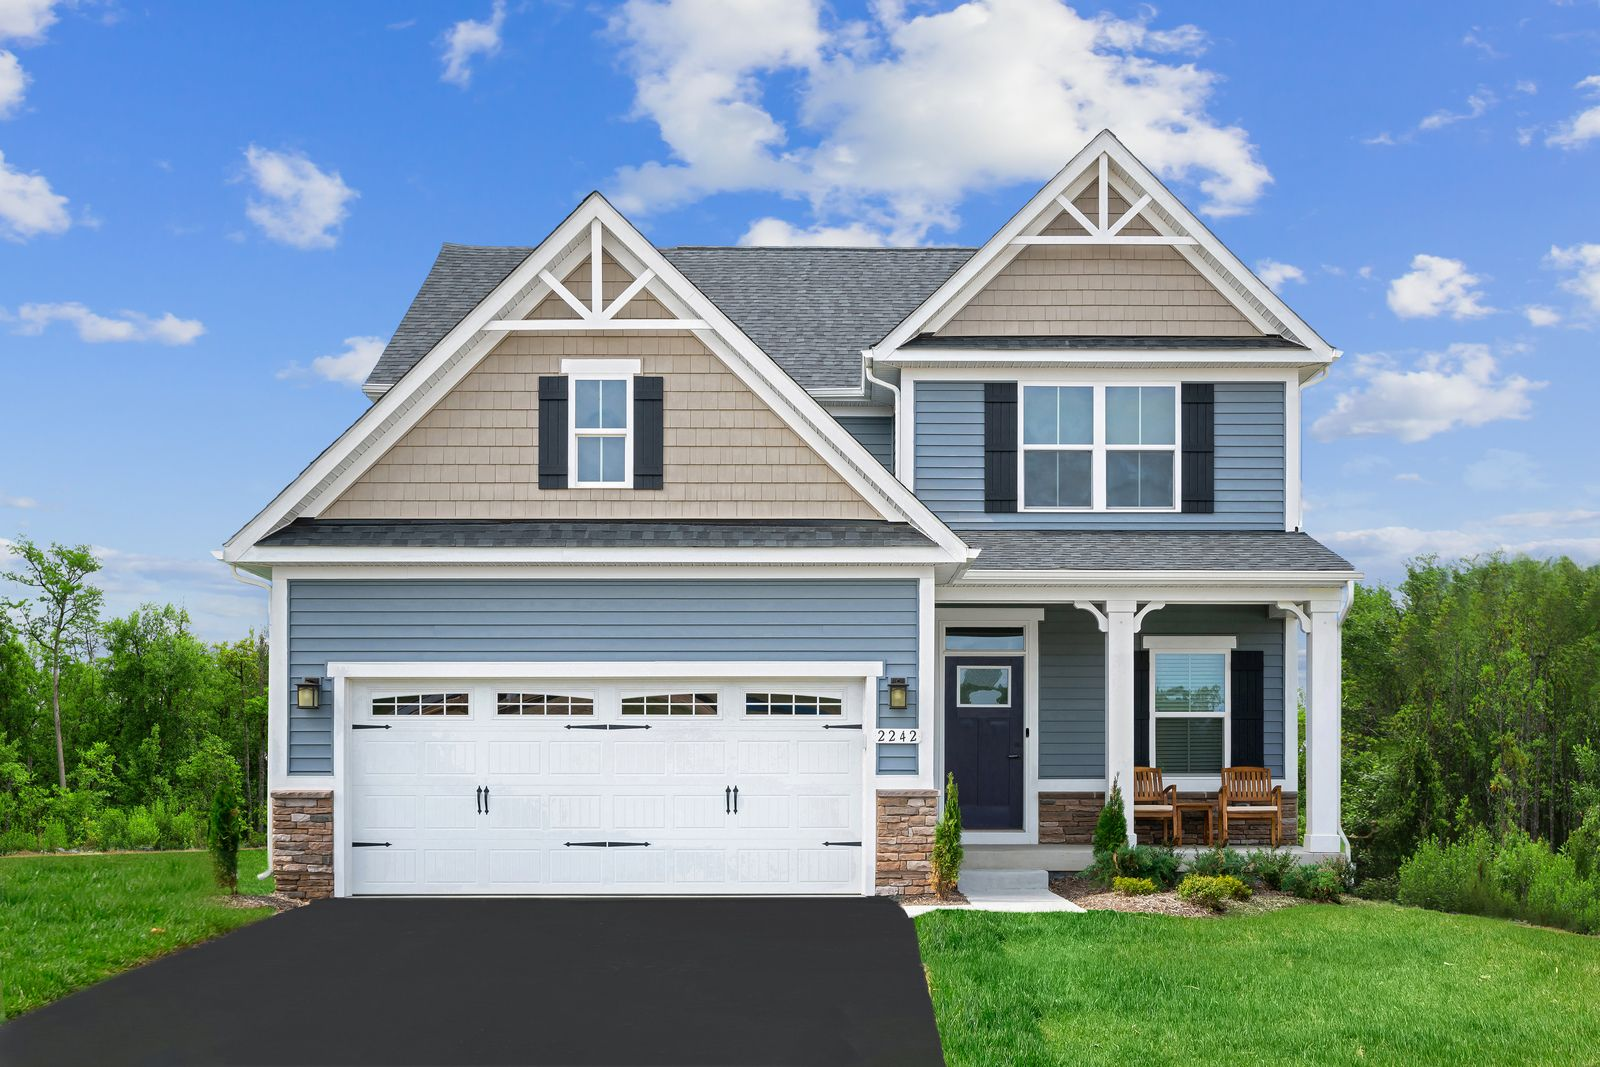 Welcome to Whitetail Meadows Single-Family Homes:Only 26 new single-family homes in the best Adams Township location with direct access to Route 228 in the Mars School District. Starting from the mid $300s.Click here to join the VIP List.